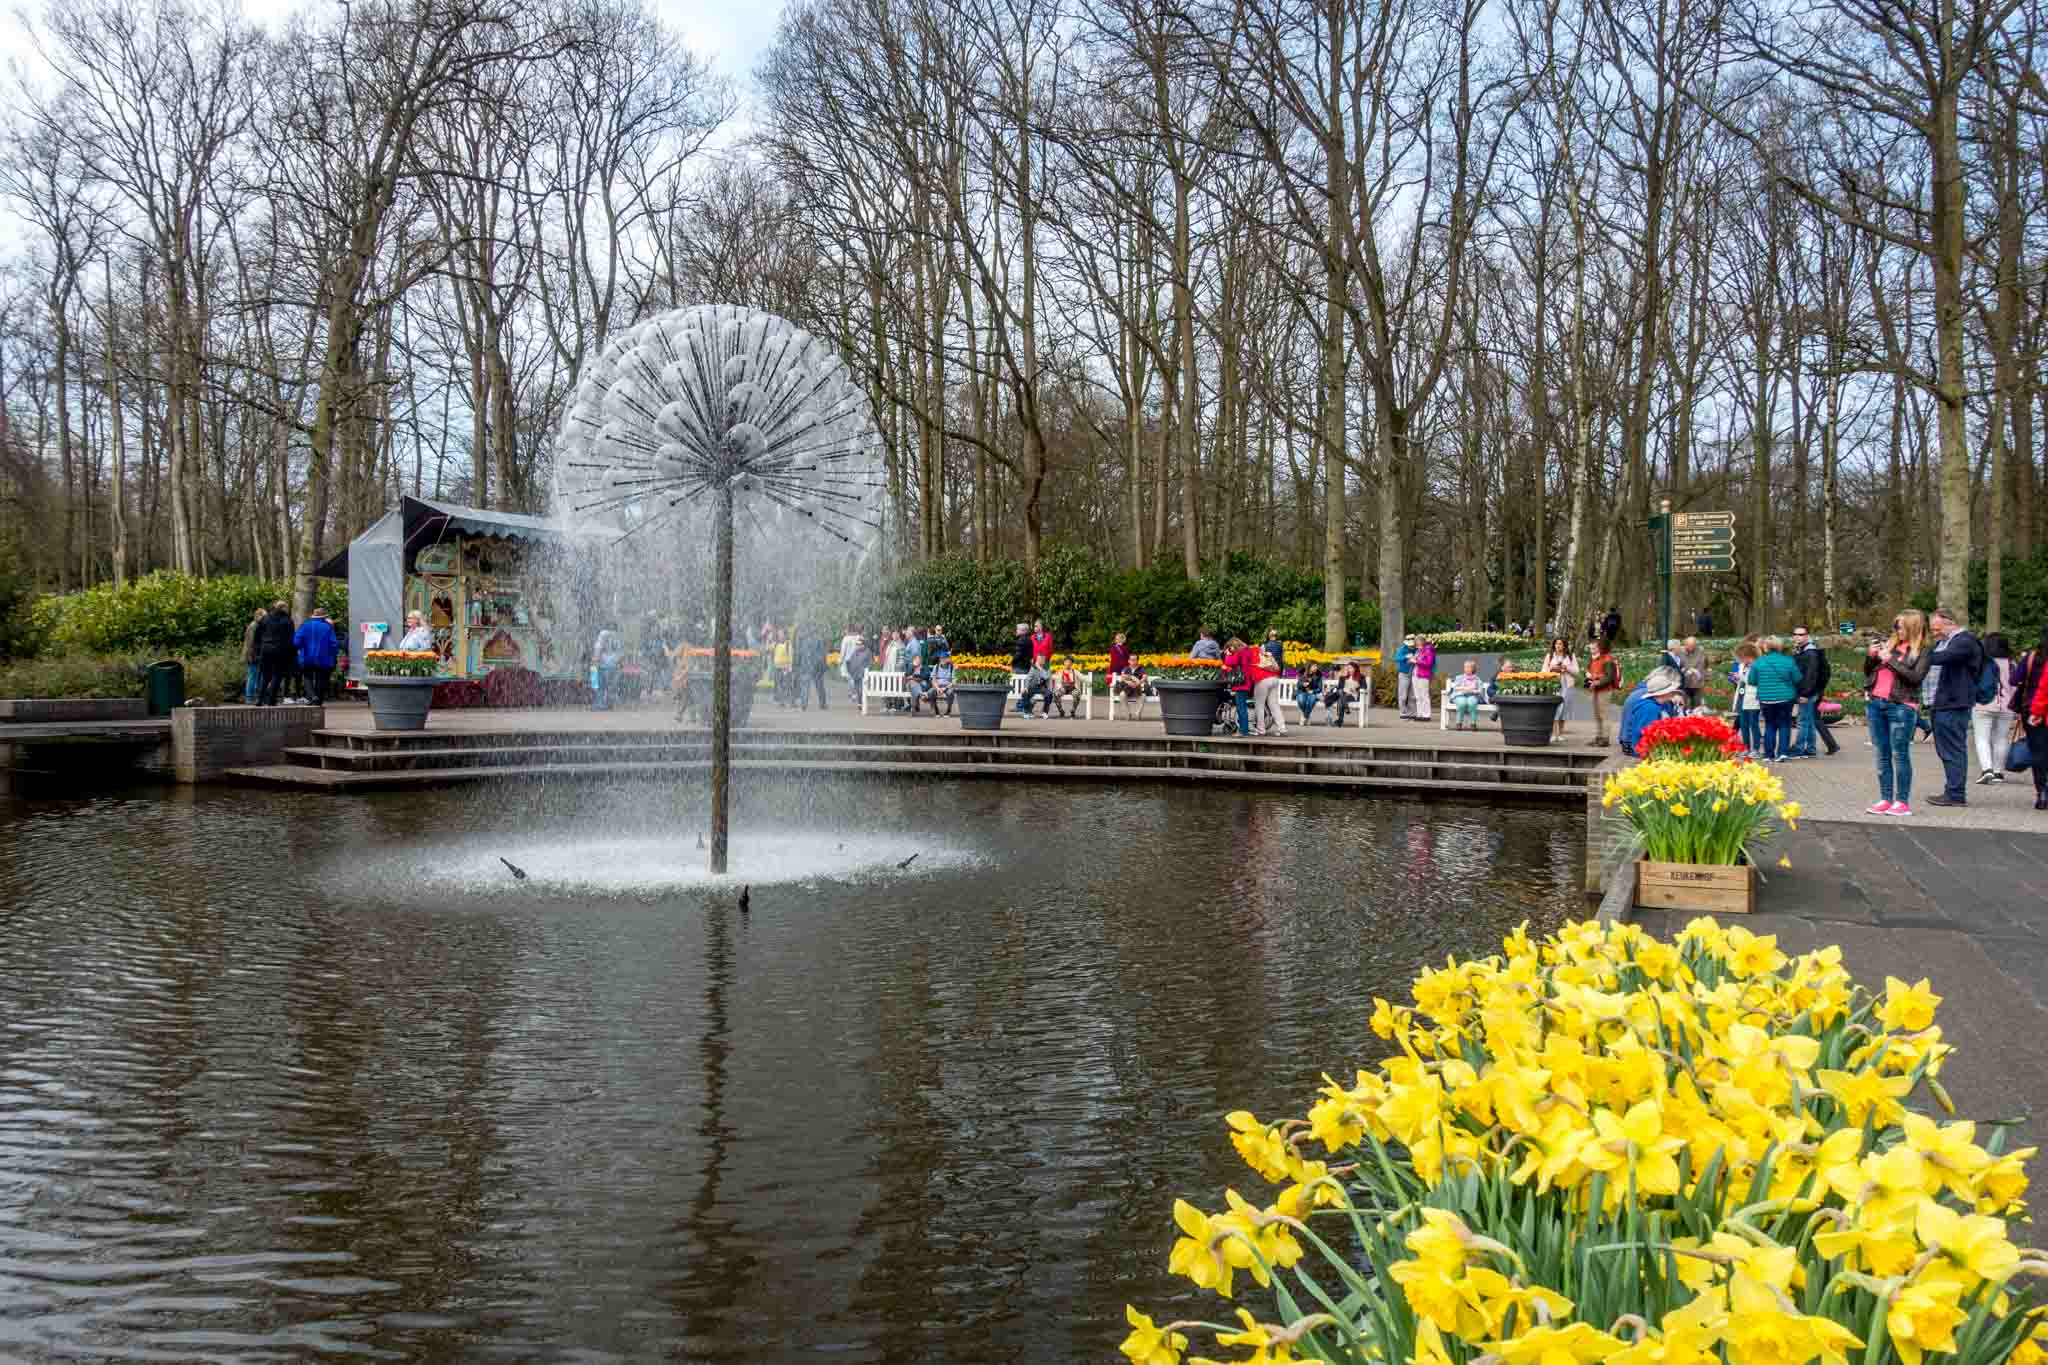 People walking around a pond with a fountain in the middle